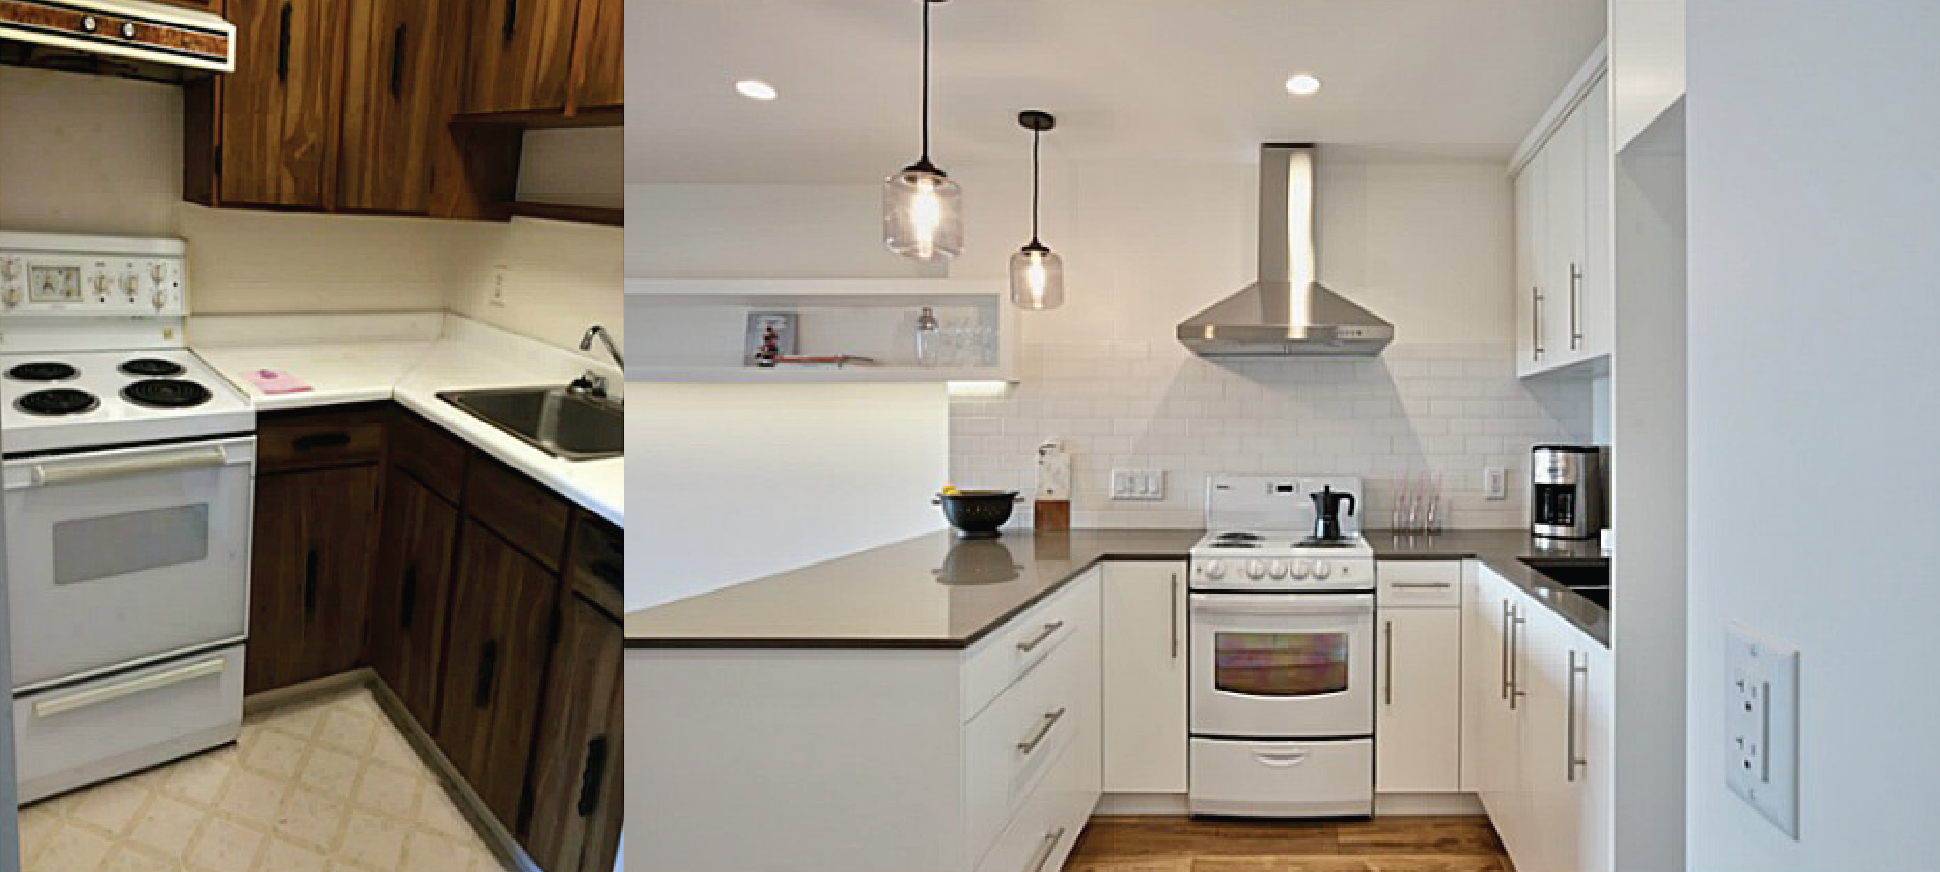 Small kitchen remodel before and after brindle before and after small kitchen remodel small - Remodeling a small kitchen before and after ...